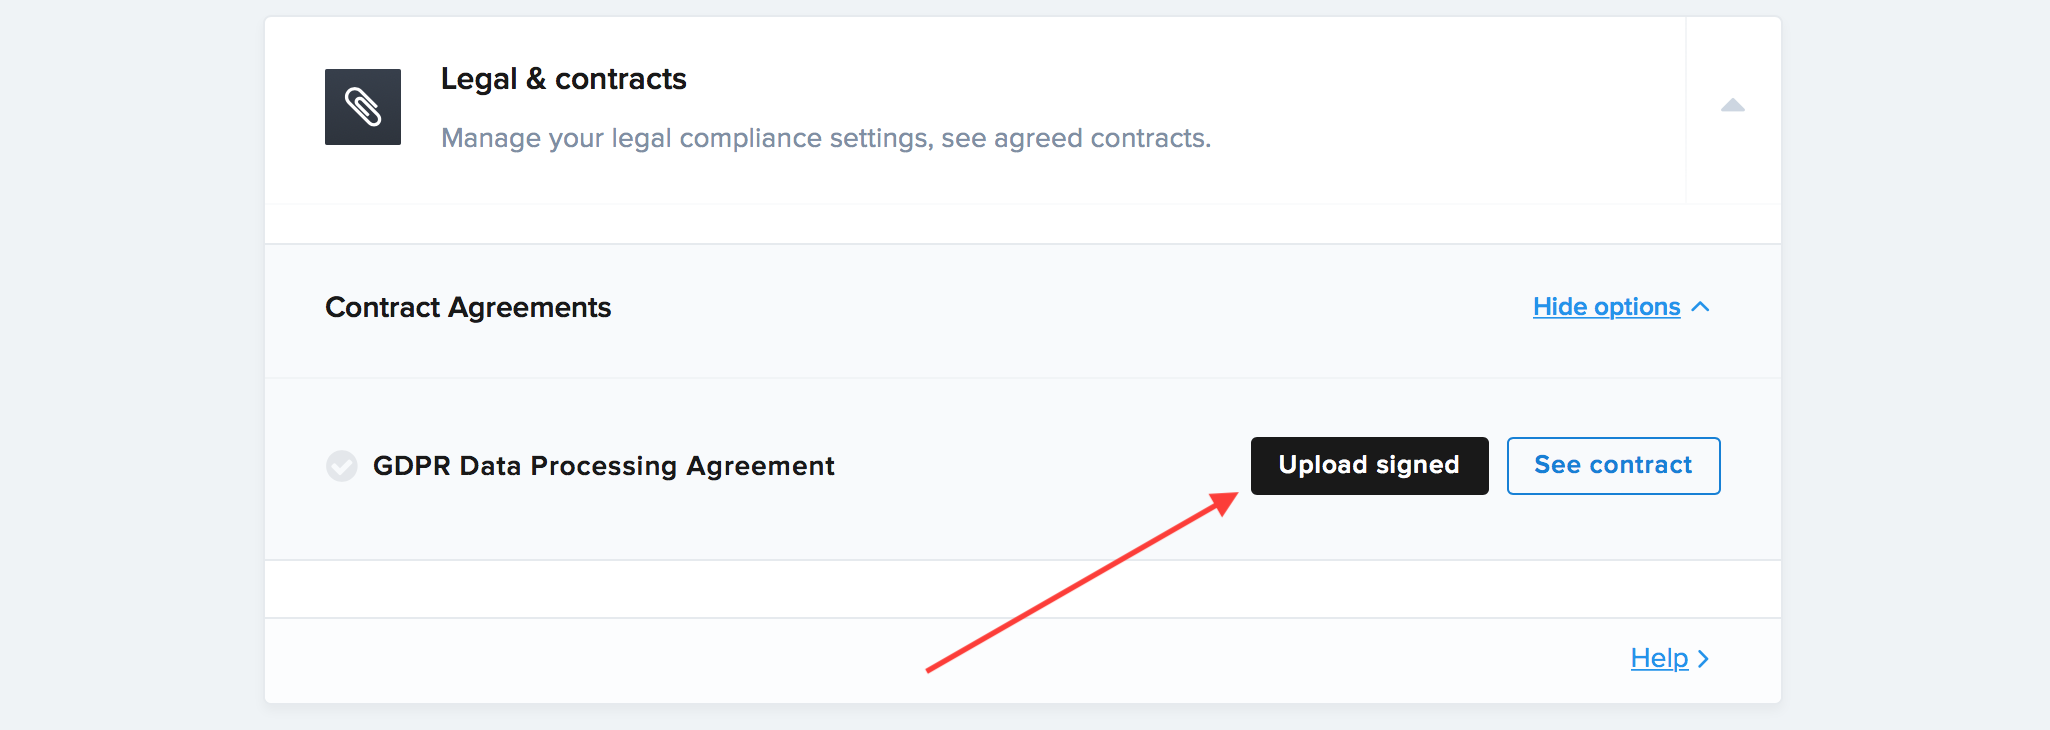 Once signed, upload your DPA contract PDF there